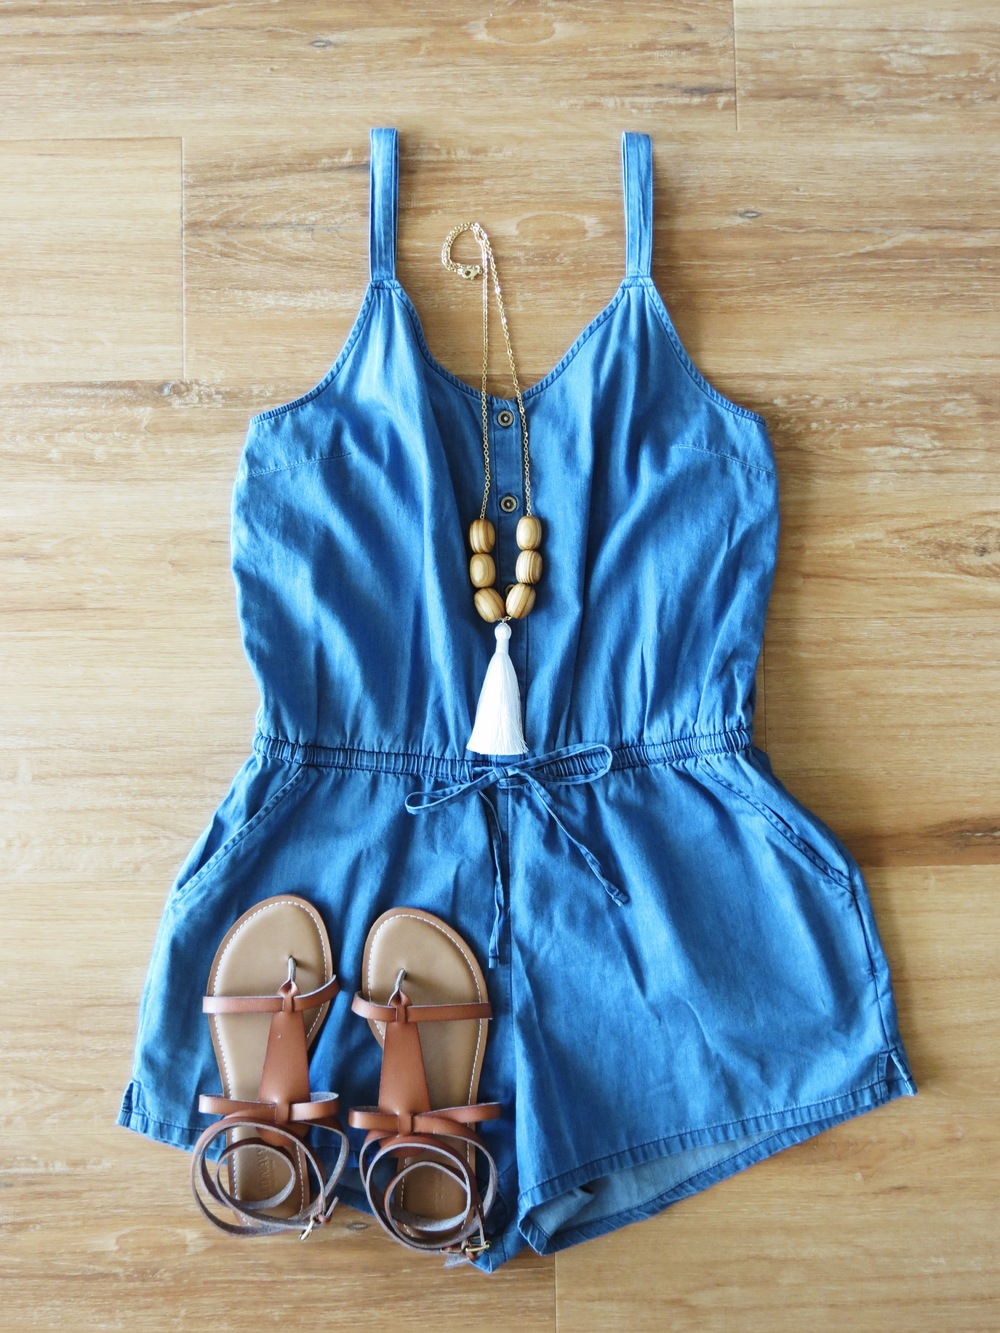 Leocadia K. Necklace // Old Navy Romper // Old Navy Sandals